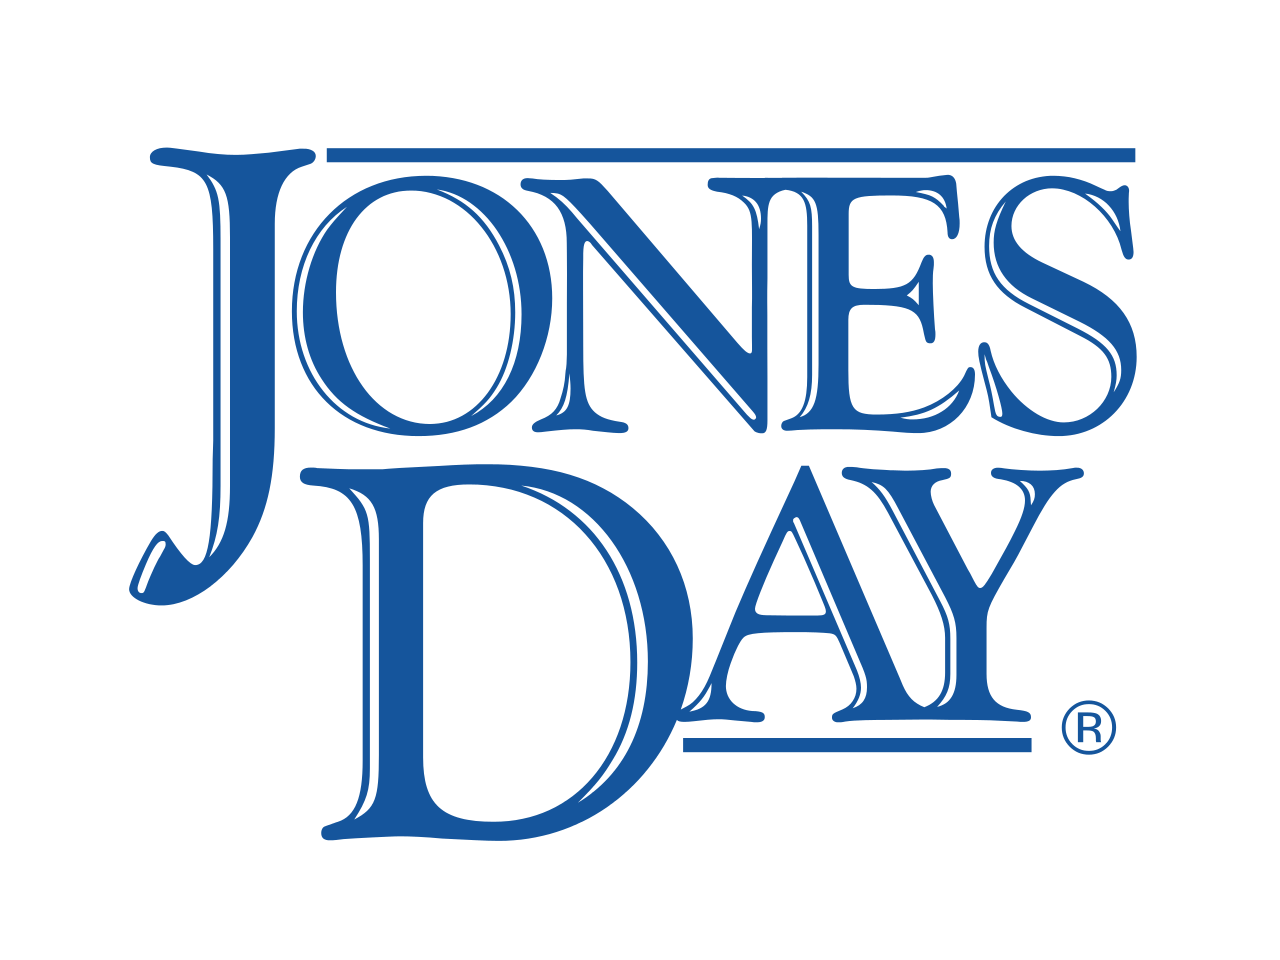 13b - Jones Day logo 04.29.15